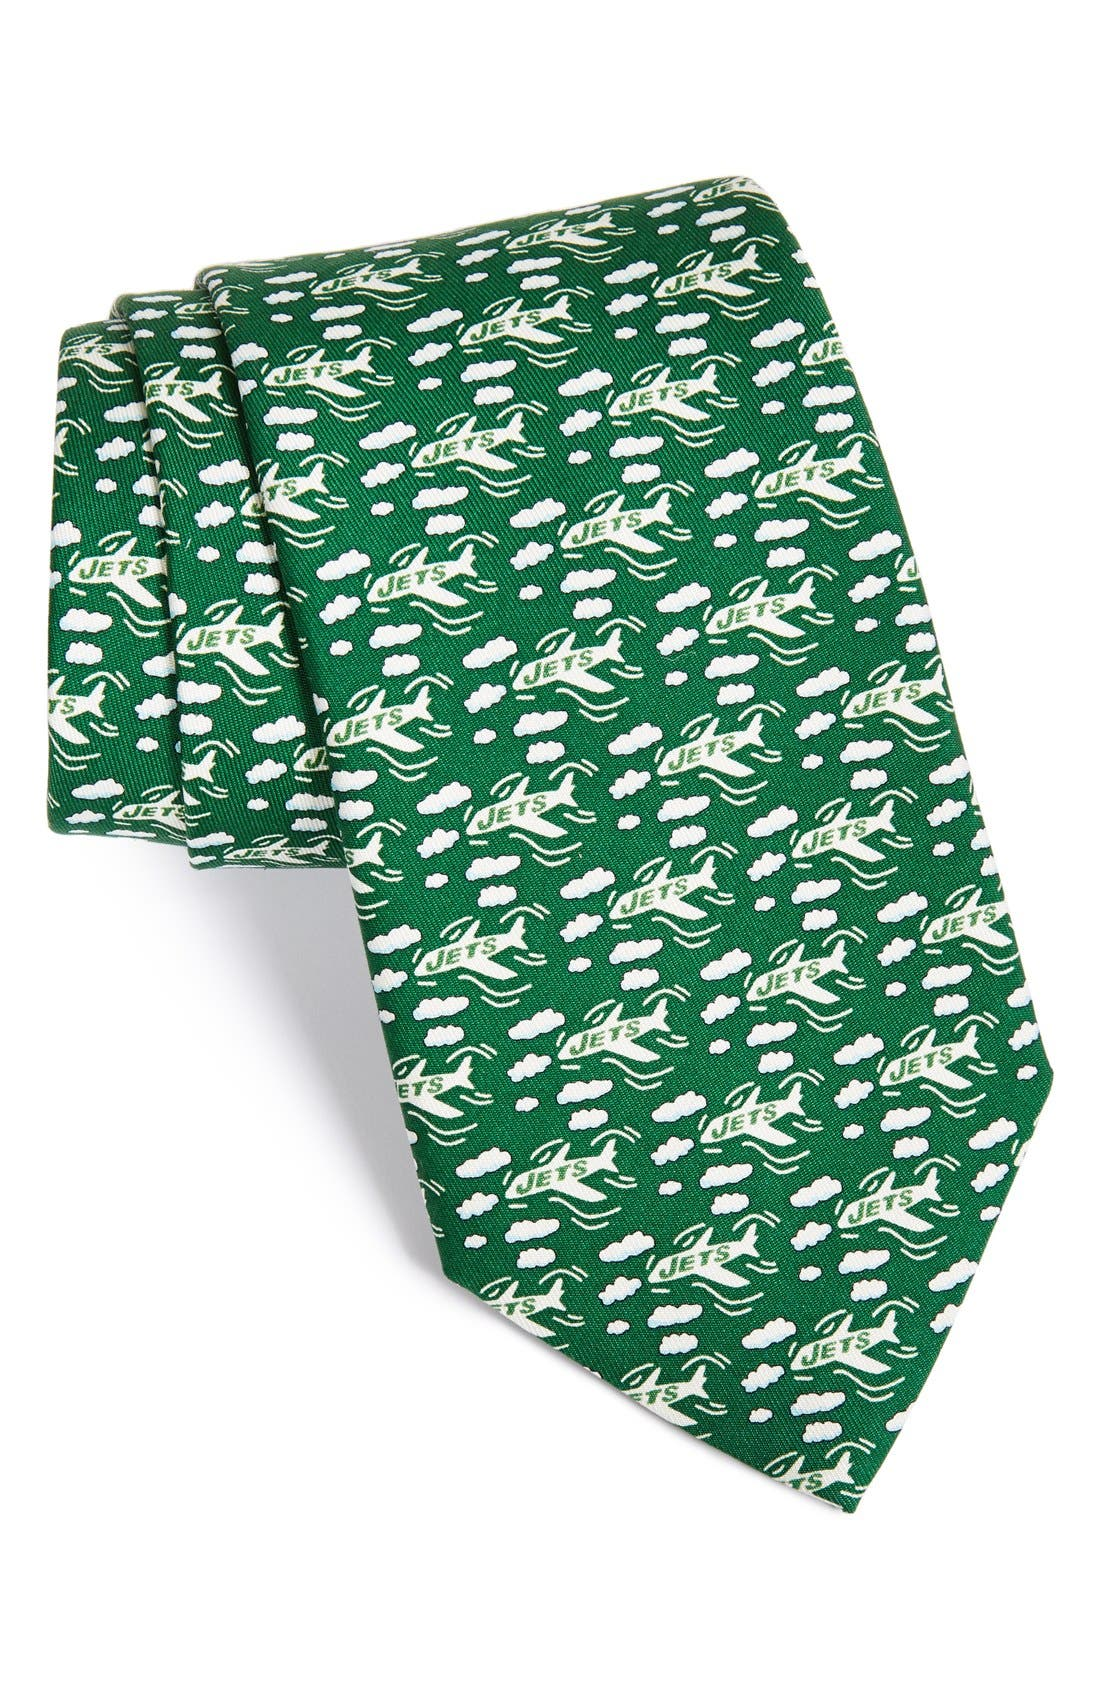 vineyard vines New York Jets - NFL Woven Silk Tie